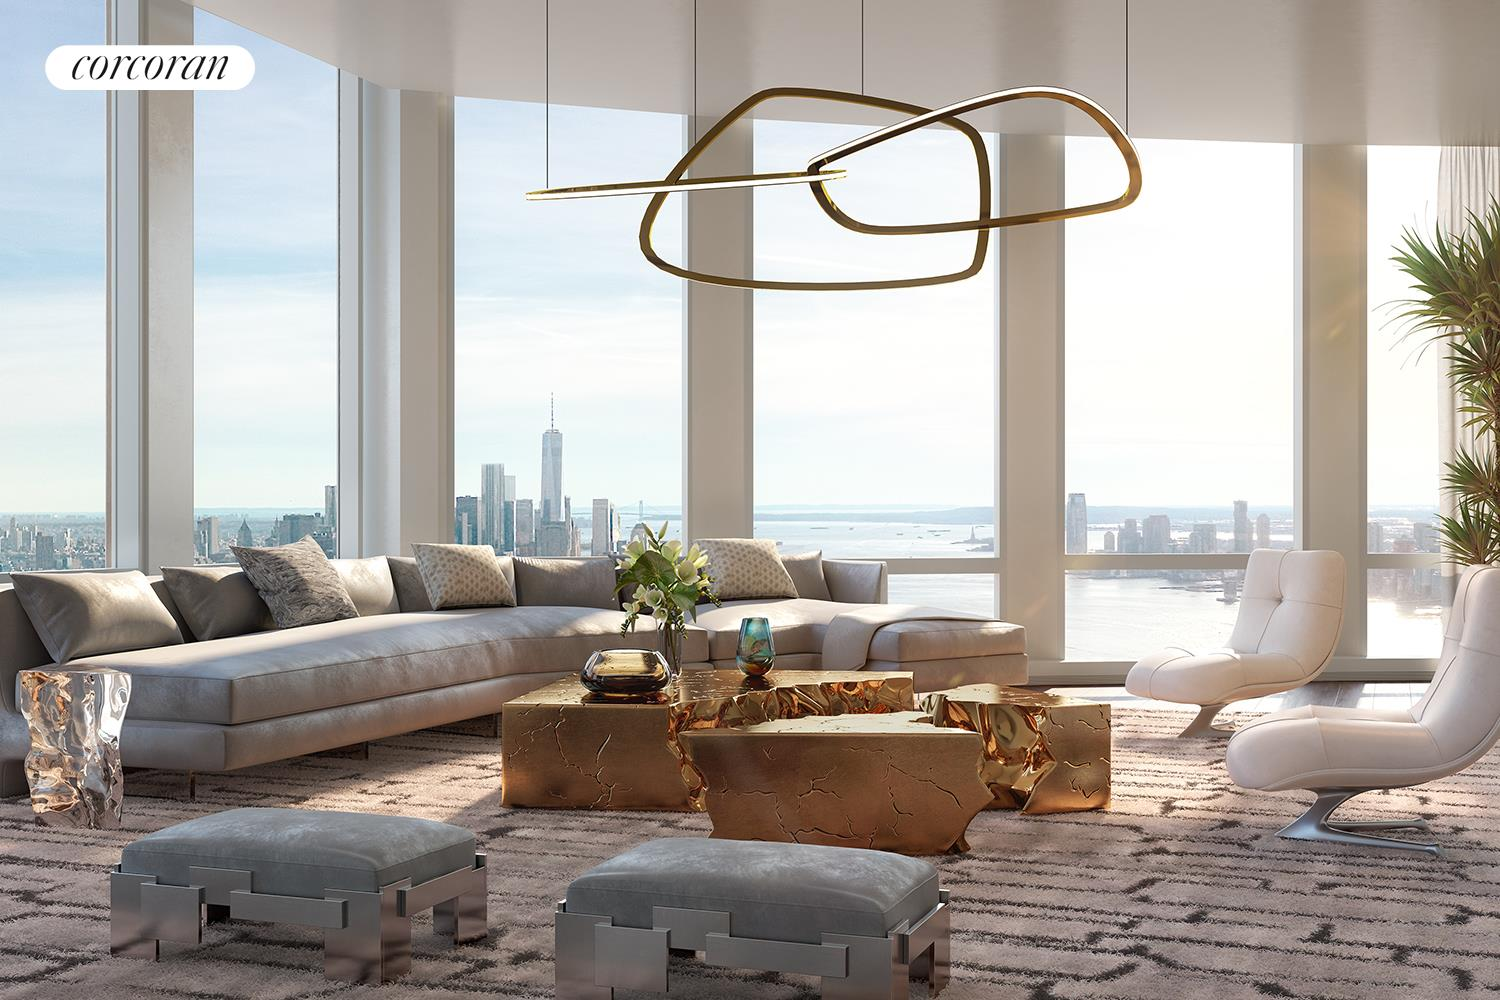 """LIVE WHERE IT ALL COMES TOGETHER35 Hudson Yards, the tallest residential building at Hudson Yards, was designed by David Childs/SOM featuring a beautiful facade of Bavarian limestone, while the residences- which start on the 53rd floor- feature interiors by AD100 designer Tony Ingrao. Residents will have access to the ultimate lifestyle including services and benefits unique to Hudson Yards. Just an elevator ride away, the building will feature a flagship Equinox Club with indoor and outdoor swimming pools, SoulCycle , Equinox Spa and the first of its kind Equinox Hotel. Three on-premises restaurants will offer incredible cuisine and in-residence dining. In addition, residents will have a full suite of private amenities, including a residents-only fitness center, playroom, business center and board rooms, lounge, game room, dining room, and grand terrace with catering services overlooking the Hudson River.EXPERIENCE SWEEPING VIEWS OF THE HUDSON RIVER FROM THIS EXPANSIVE FIVE BEDROOM HOME SPANNING THE ENTIRE SOUTHERN FACADE OF THE BUILDING. Enter this spectacular five bedroom residence through grand double-doors and enjoy the 10'10"""" ceilings, lavish satin finish wide plank French oak floors, massive south-facing Great Room, formal Dining Room, and stunning views of the Hudson River from every room. The windowed eat-in kitchen has been outfitted with luxurious Smallbone of Devizes cabinetry with opal white marble counters and backsplash. Full suite of Gaggenau appliances, inclusive of a wine fridge and coffee maker, truly make this kitchen extraordinary. The corner master bedroom boasts a dressing room and wet bar, and a luxurious windowed master bathroom which is wrapped in stunning iceberg quartzite, complete with stunning double vanity with Kinon panels, and full depth soaking tub. The other bedrooms are all equipped with en-suite baths. The utility room, with side-by-side Washer/Dryer, and handsome onyx- clad Powder Room are both conveniently located off the Great"""